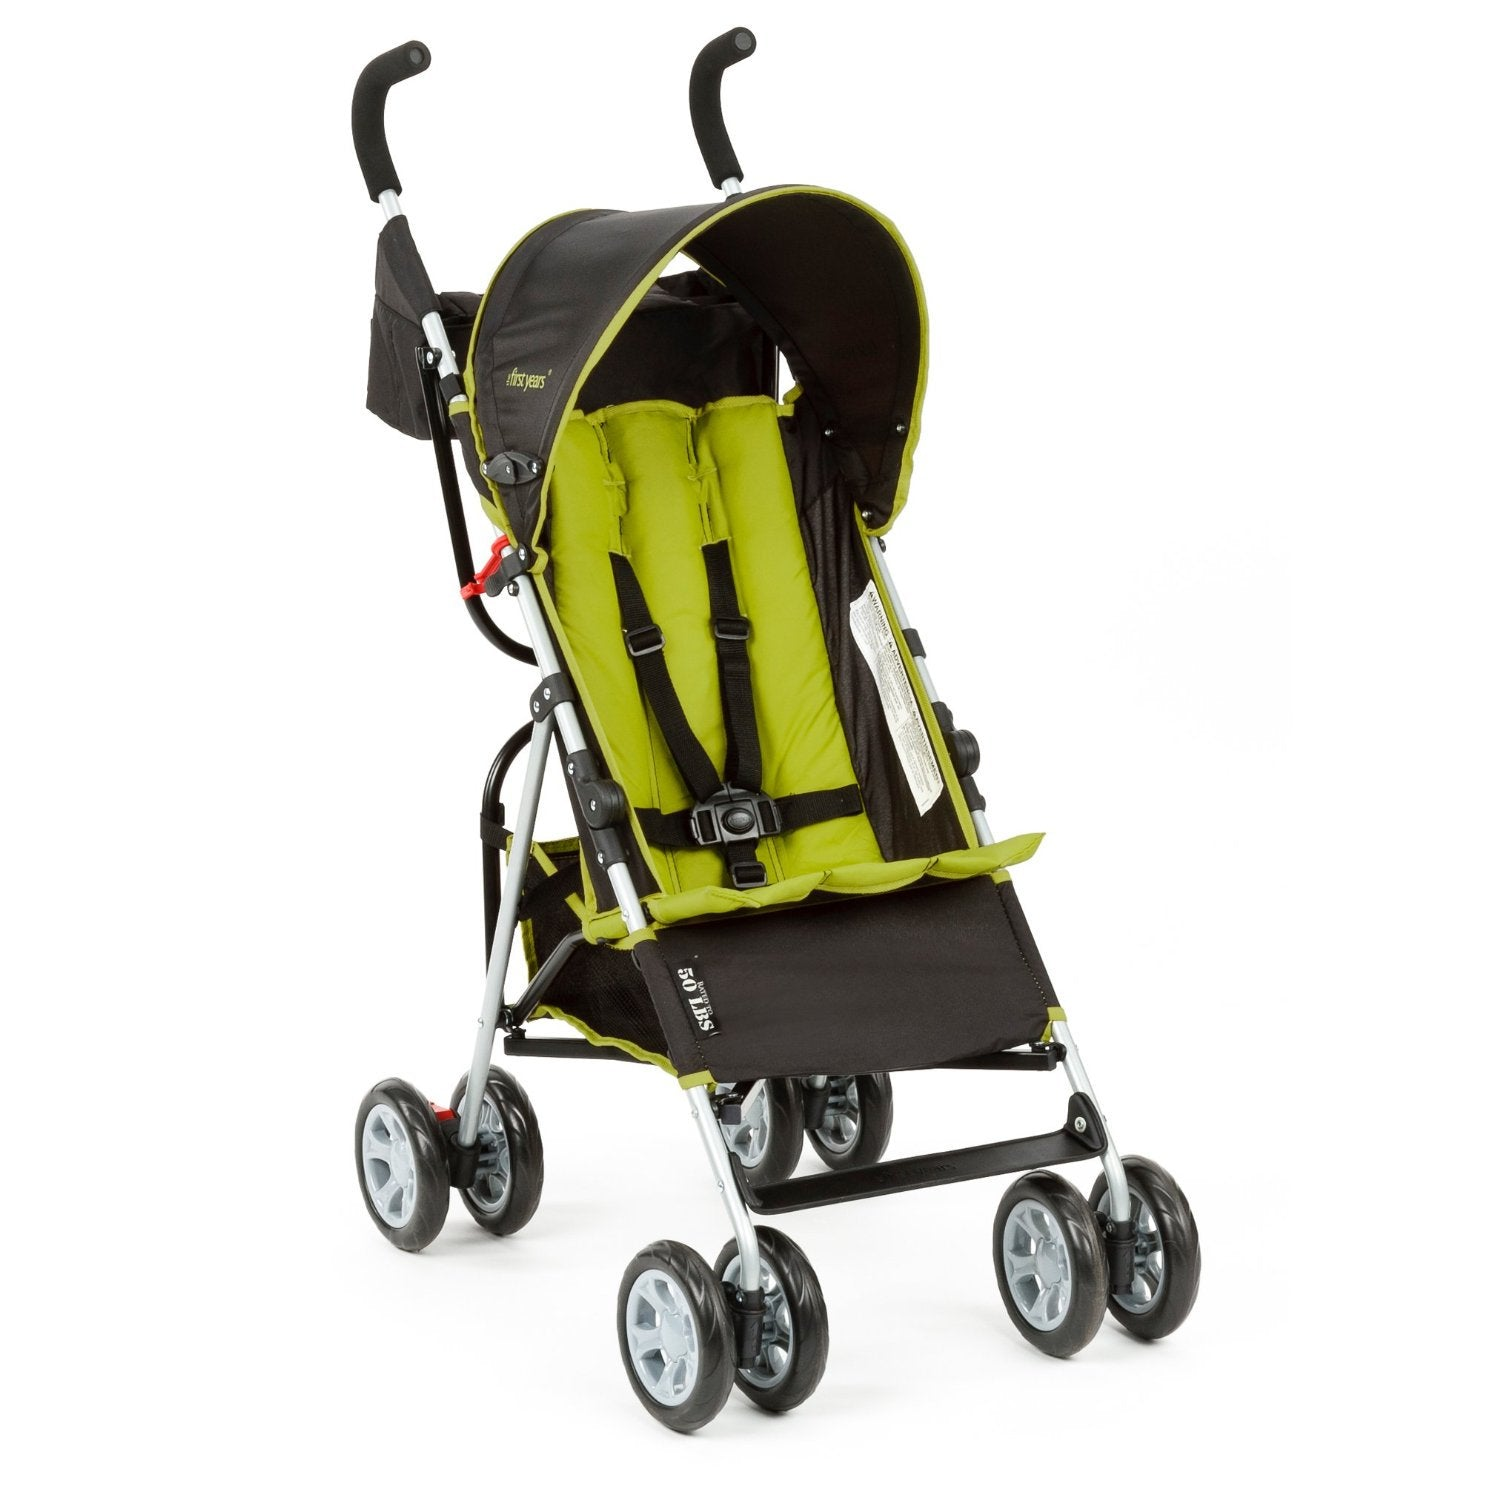 Tool, Get The Best Strollers For Your Baby